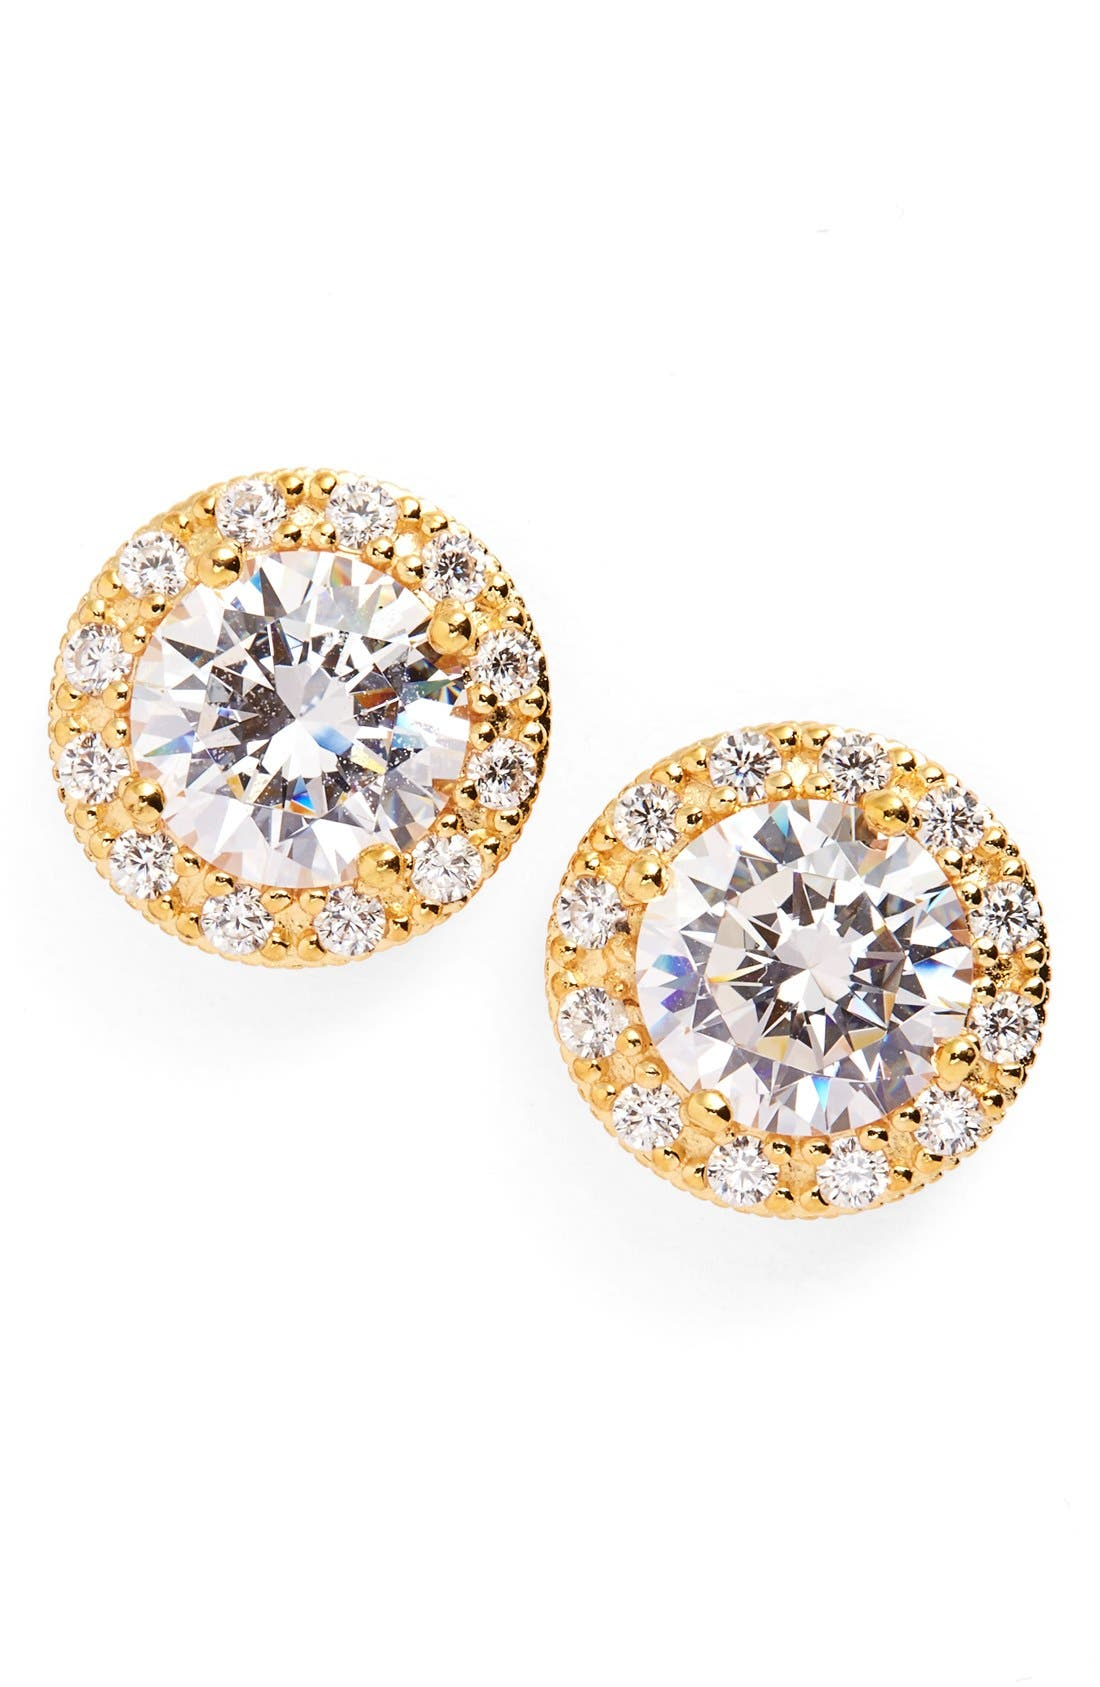 Pavé Round Stud Earrings,                             Alternate thumbnail 6, color,                             GOLD